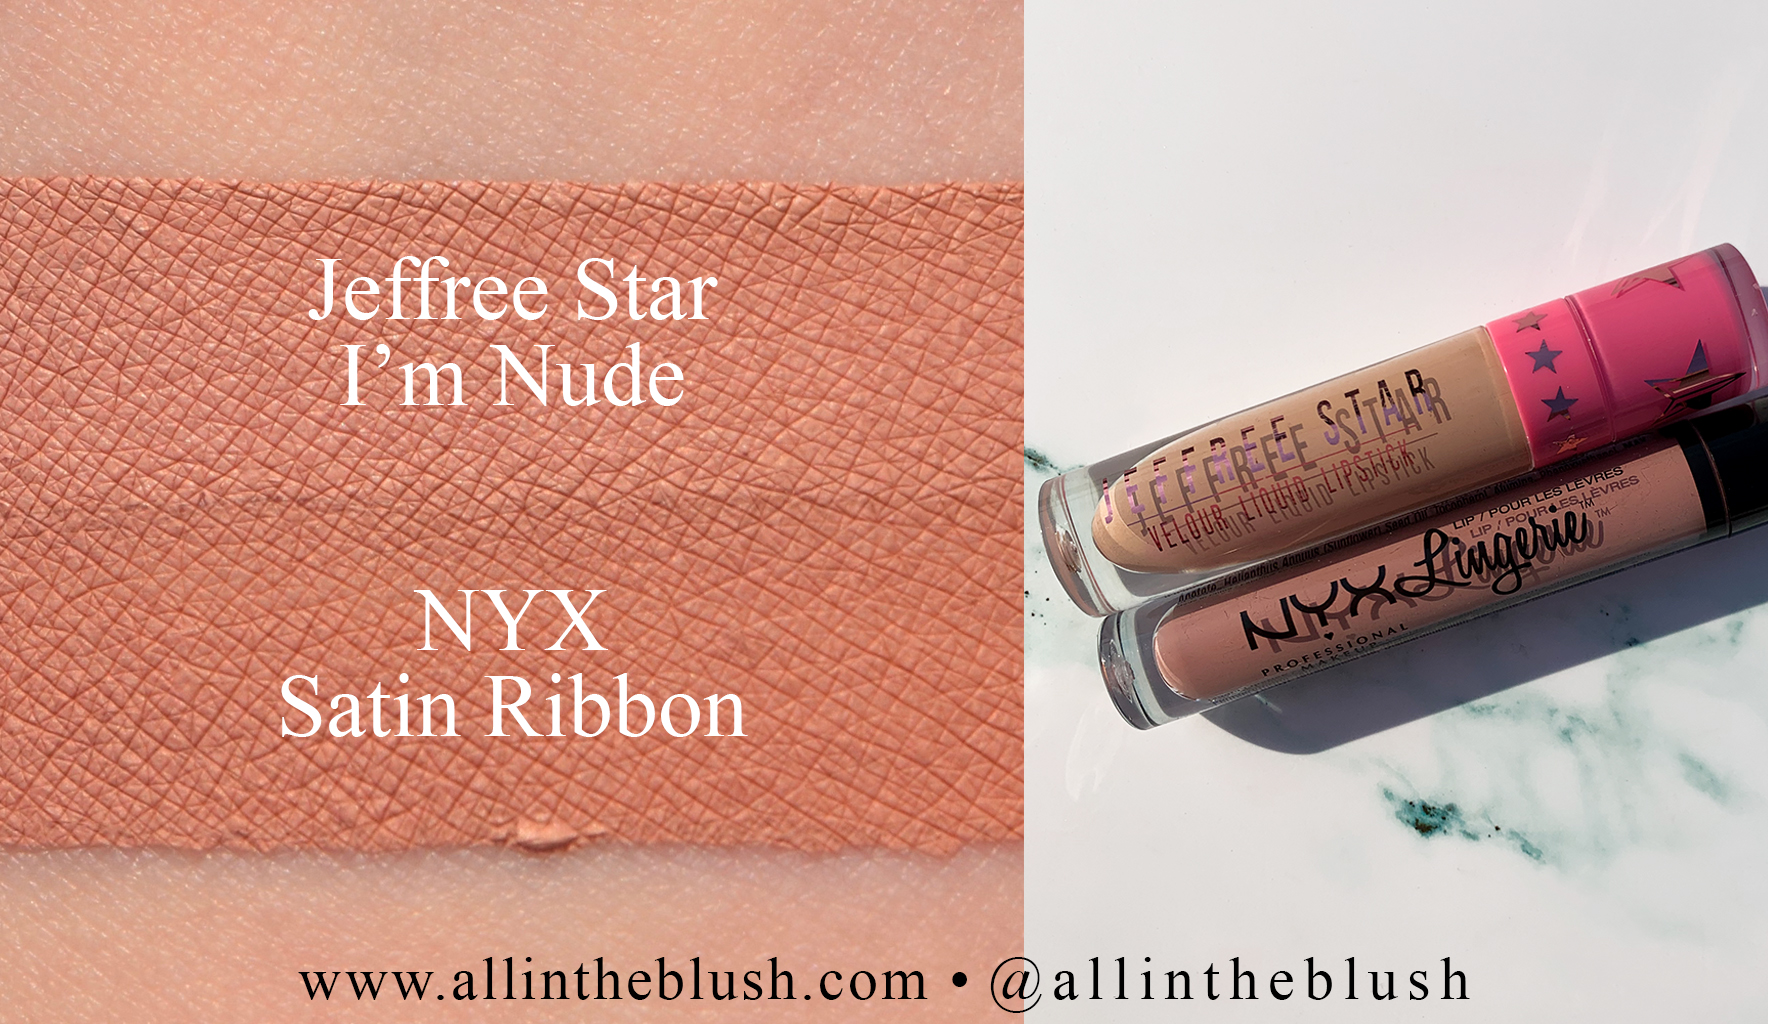 Jeffree Star Fully Nude Velour Liquid Lipstick Dupes - All